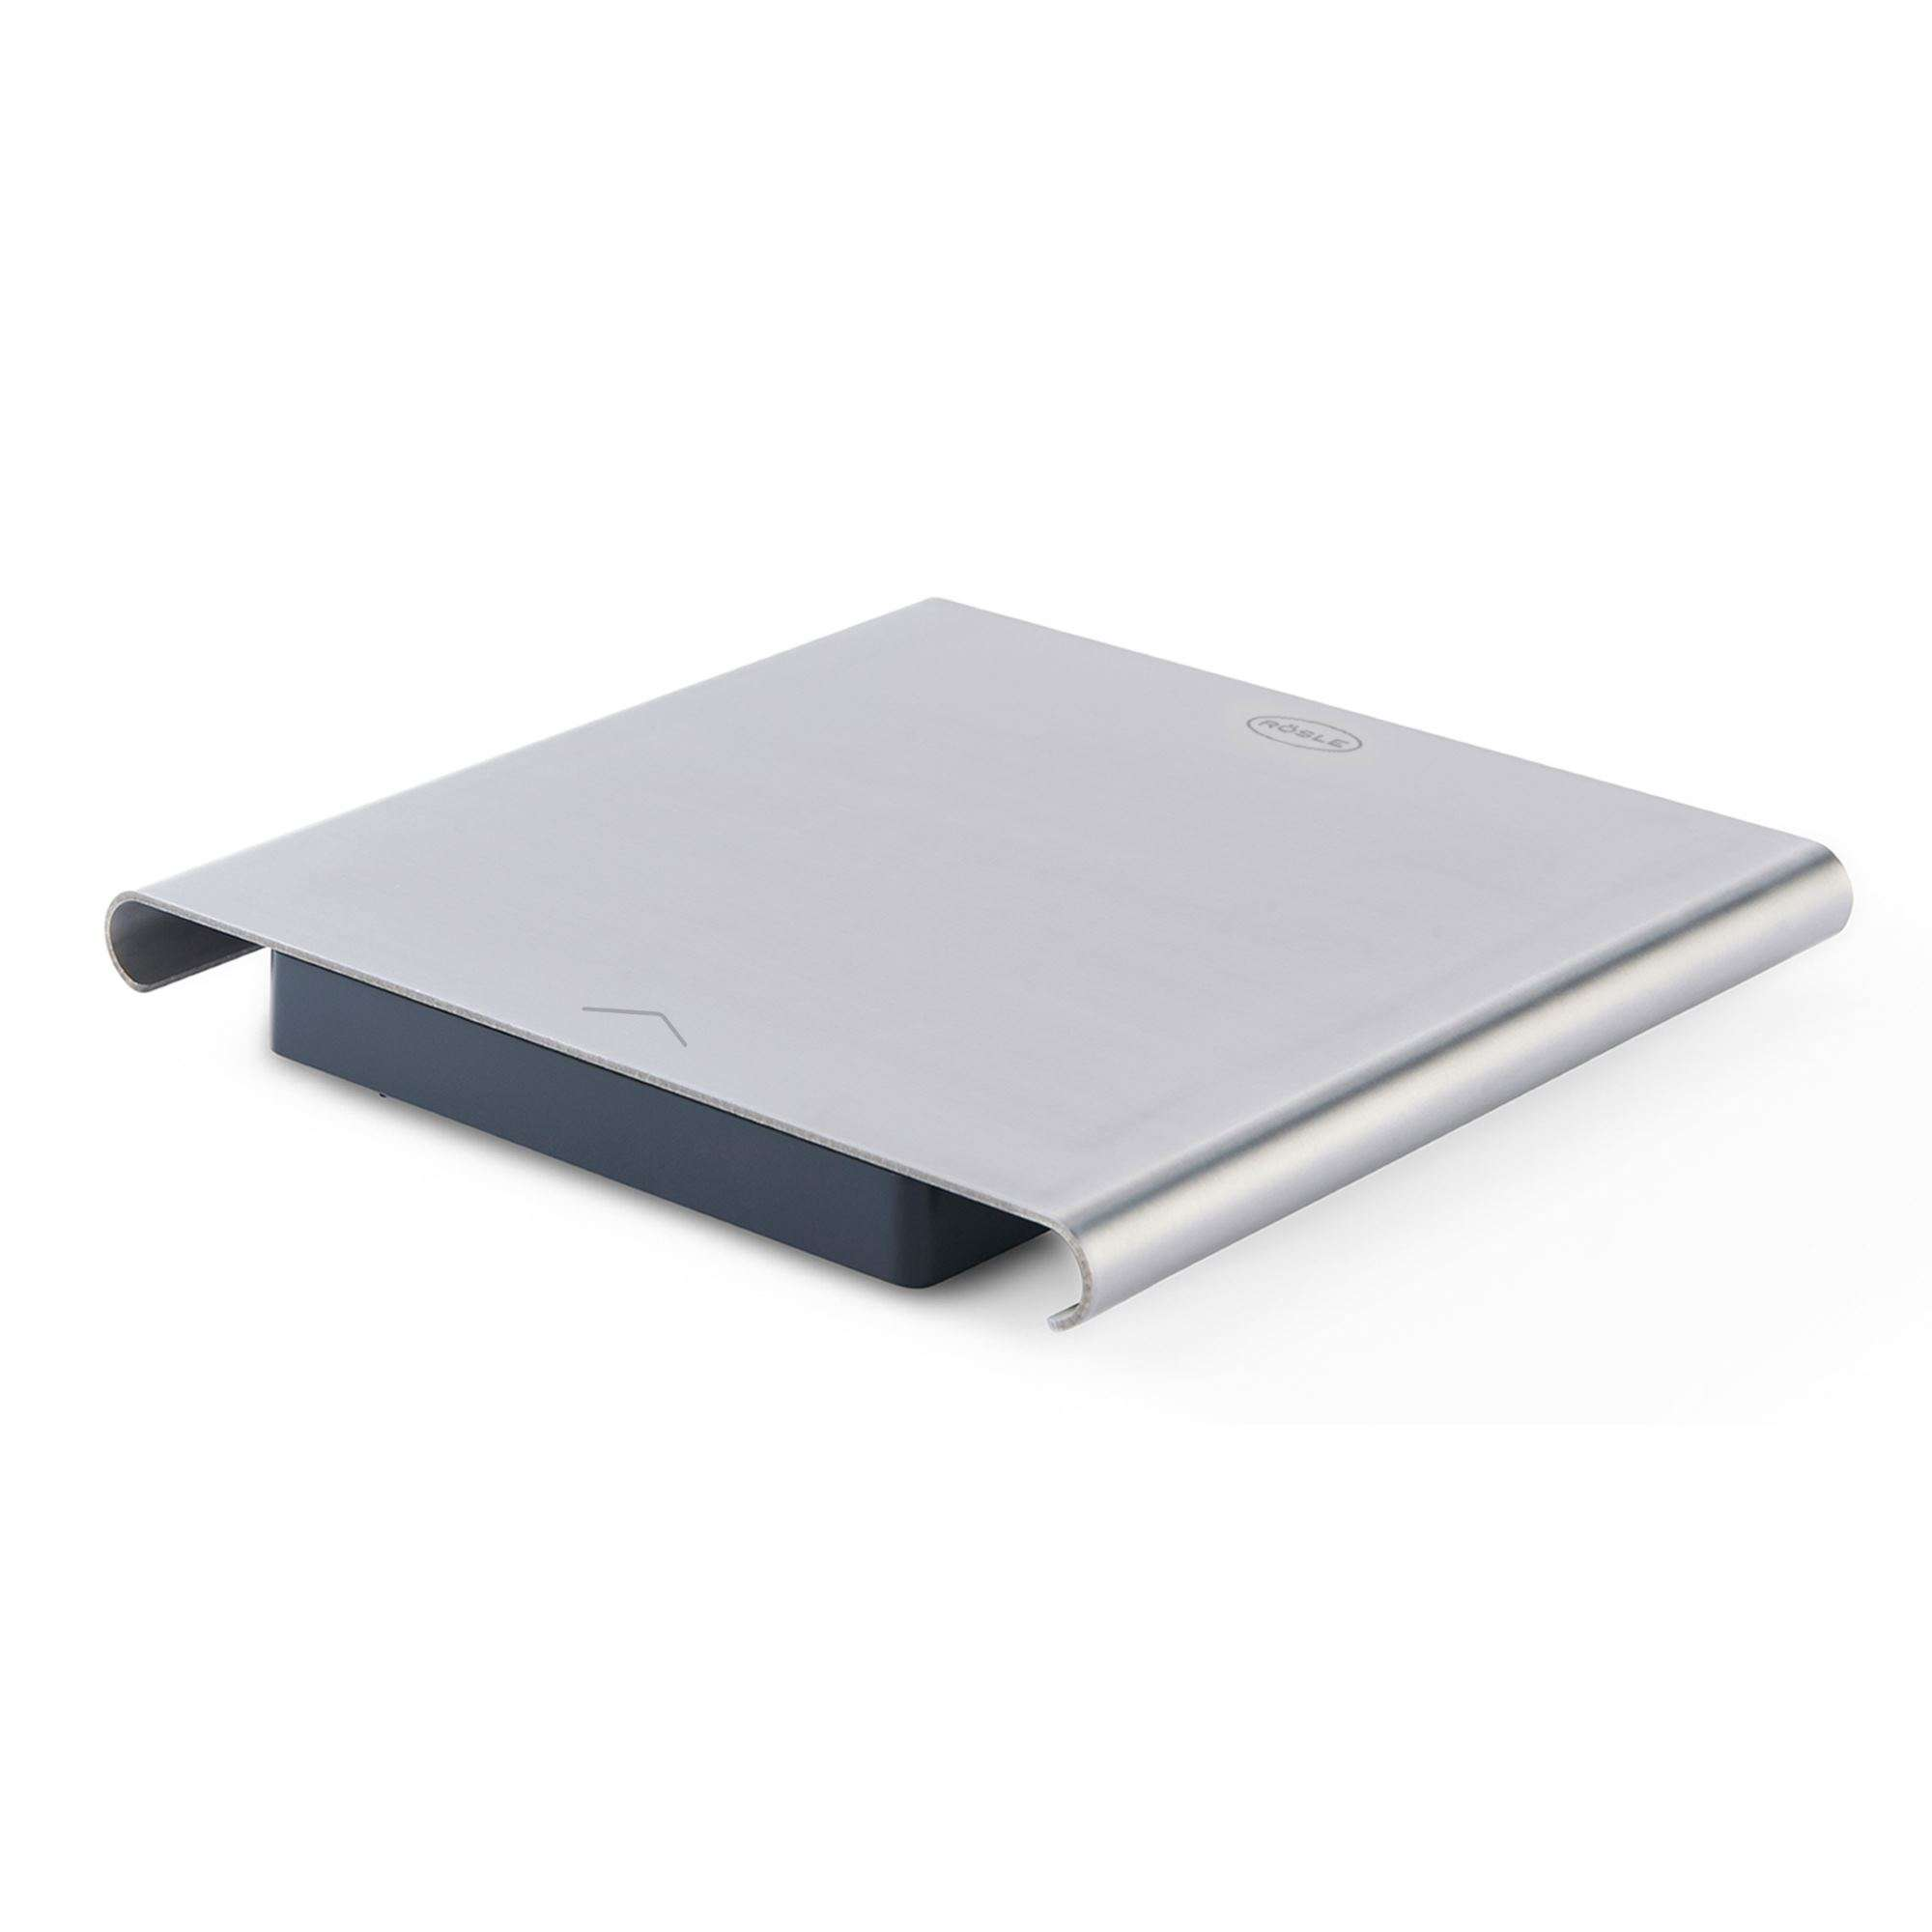 Rosle Kitchen Scales Digital With Slide Mechanism Scales